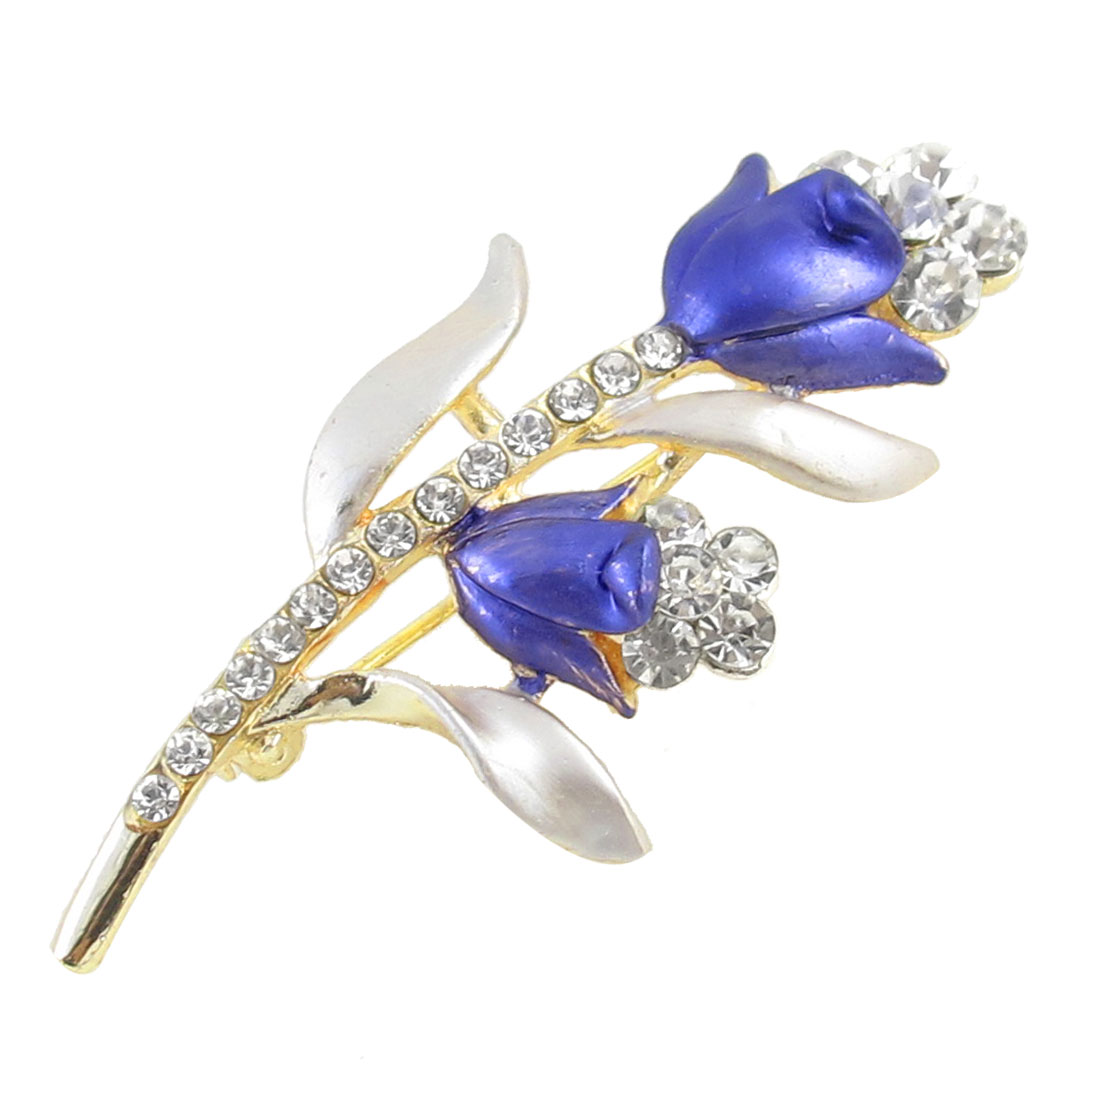 Ladies Rhinestones Inlaid Metal Flowers Brooch Breast Pin Decor Gold Tone Blue